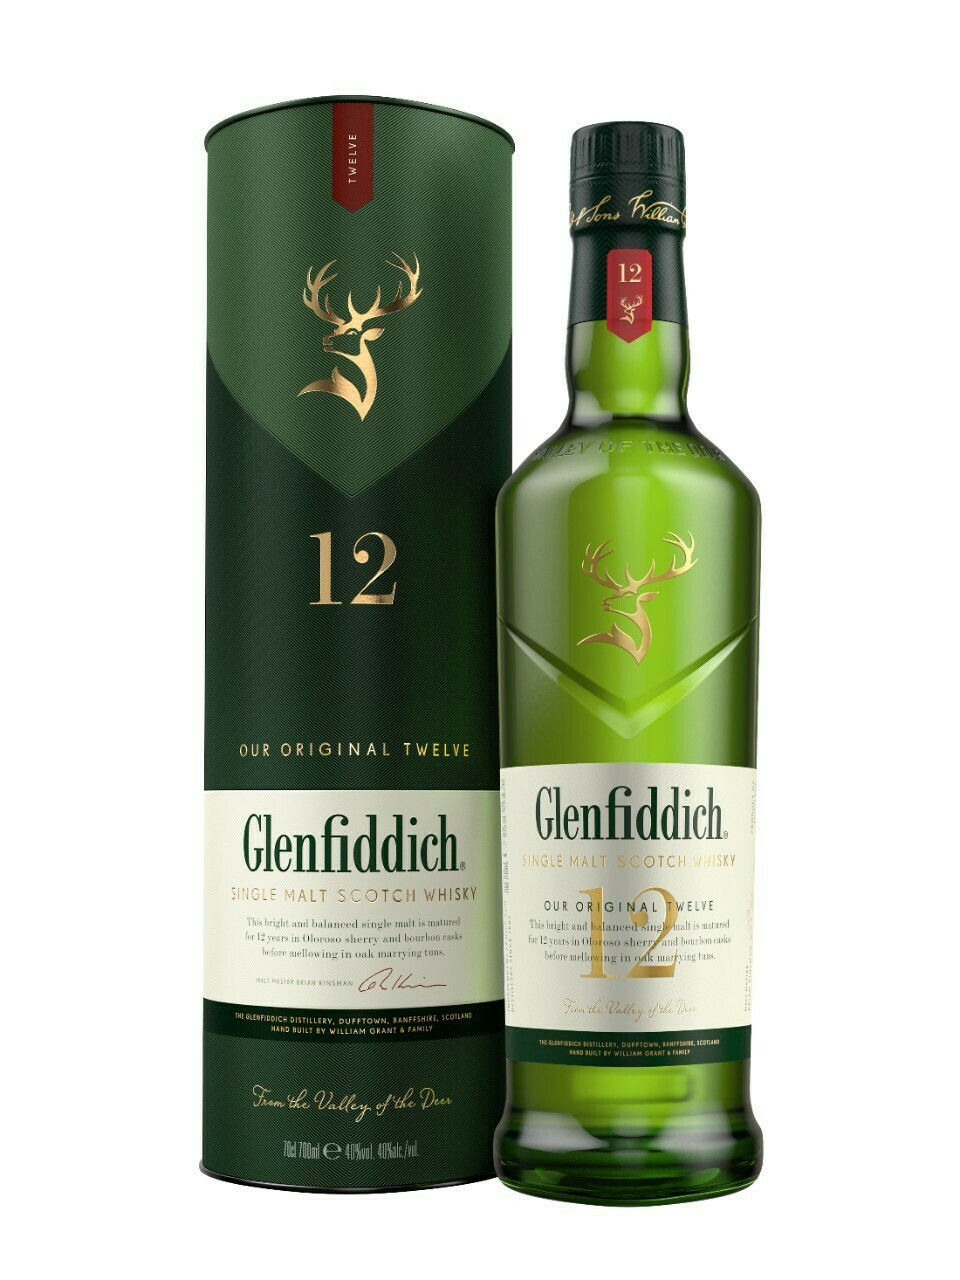 The Glenfiddich 12 Year Old Single Malt Scotch Whisky